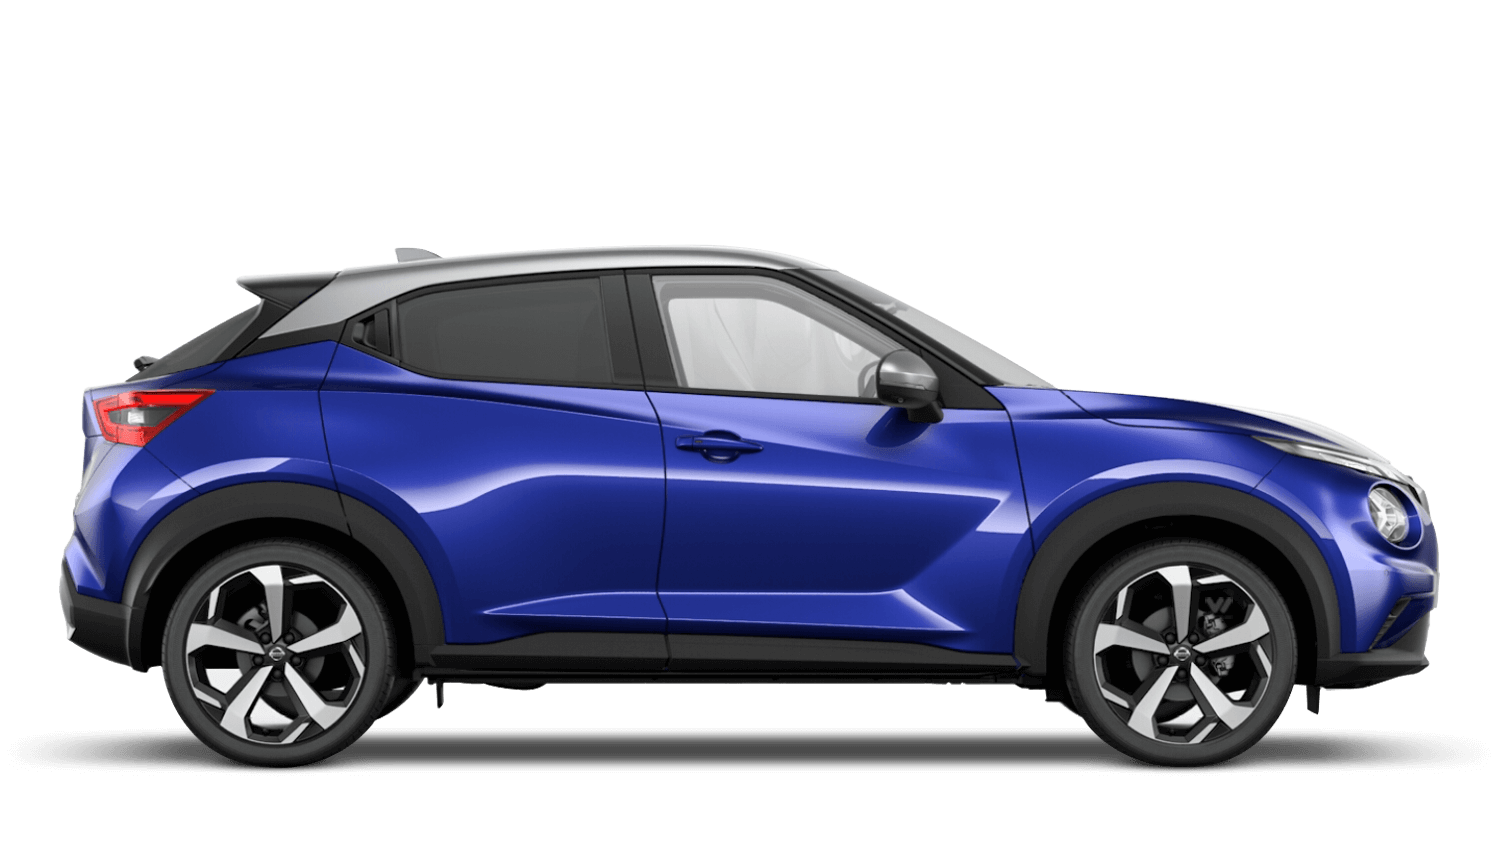 Ink Blue with Blade Silver Roof Next Generation Nissan Juke